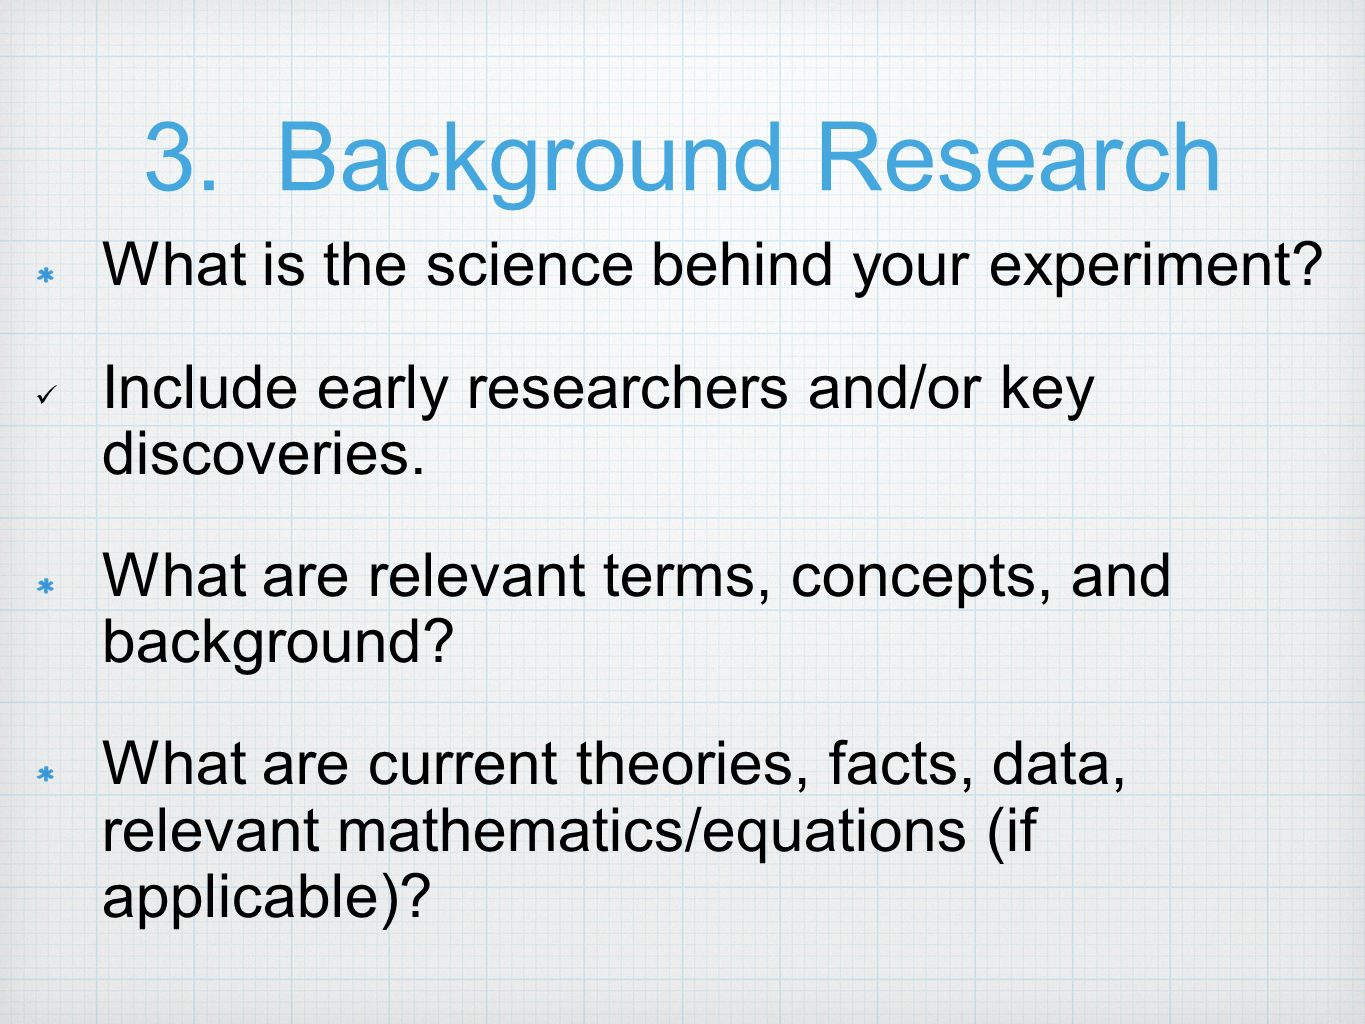 001 Backgroundresearchwhatisthesciencebehindyourexperiment Research Paper Background Example For Science Fantastic Fair Full